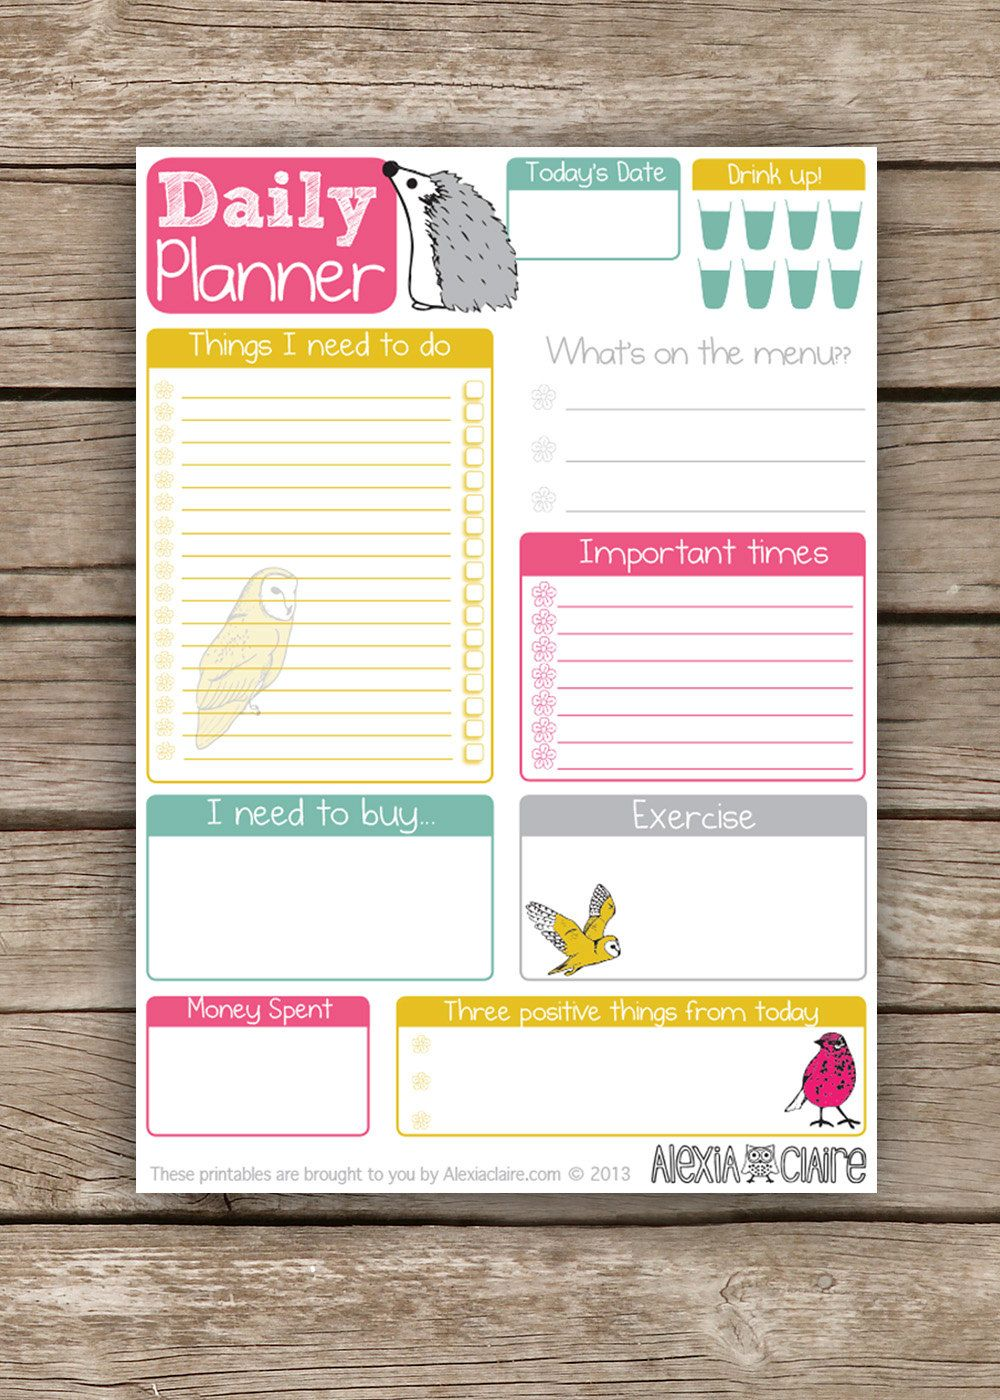 Daily Planner - Cute hand drawn animal illustrated - To do